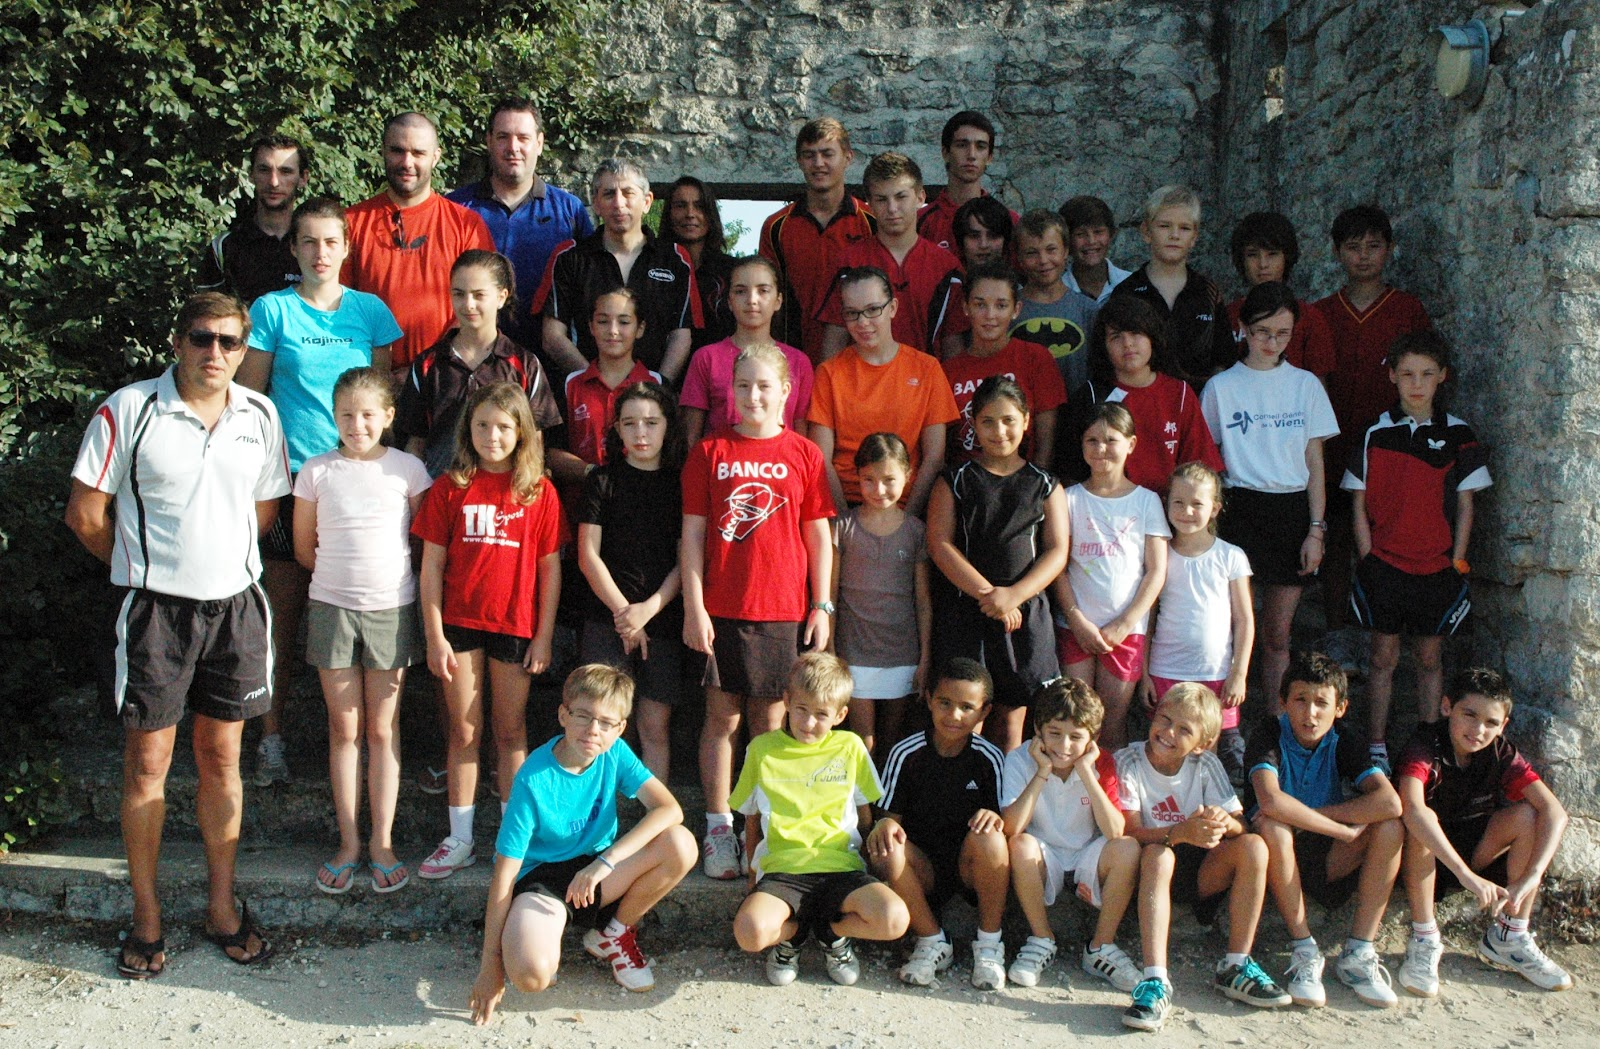 Commission technique tt poitou charentes stages r gionaux - Ligue poitou charente tennis de table ...